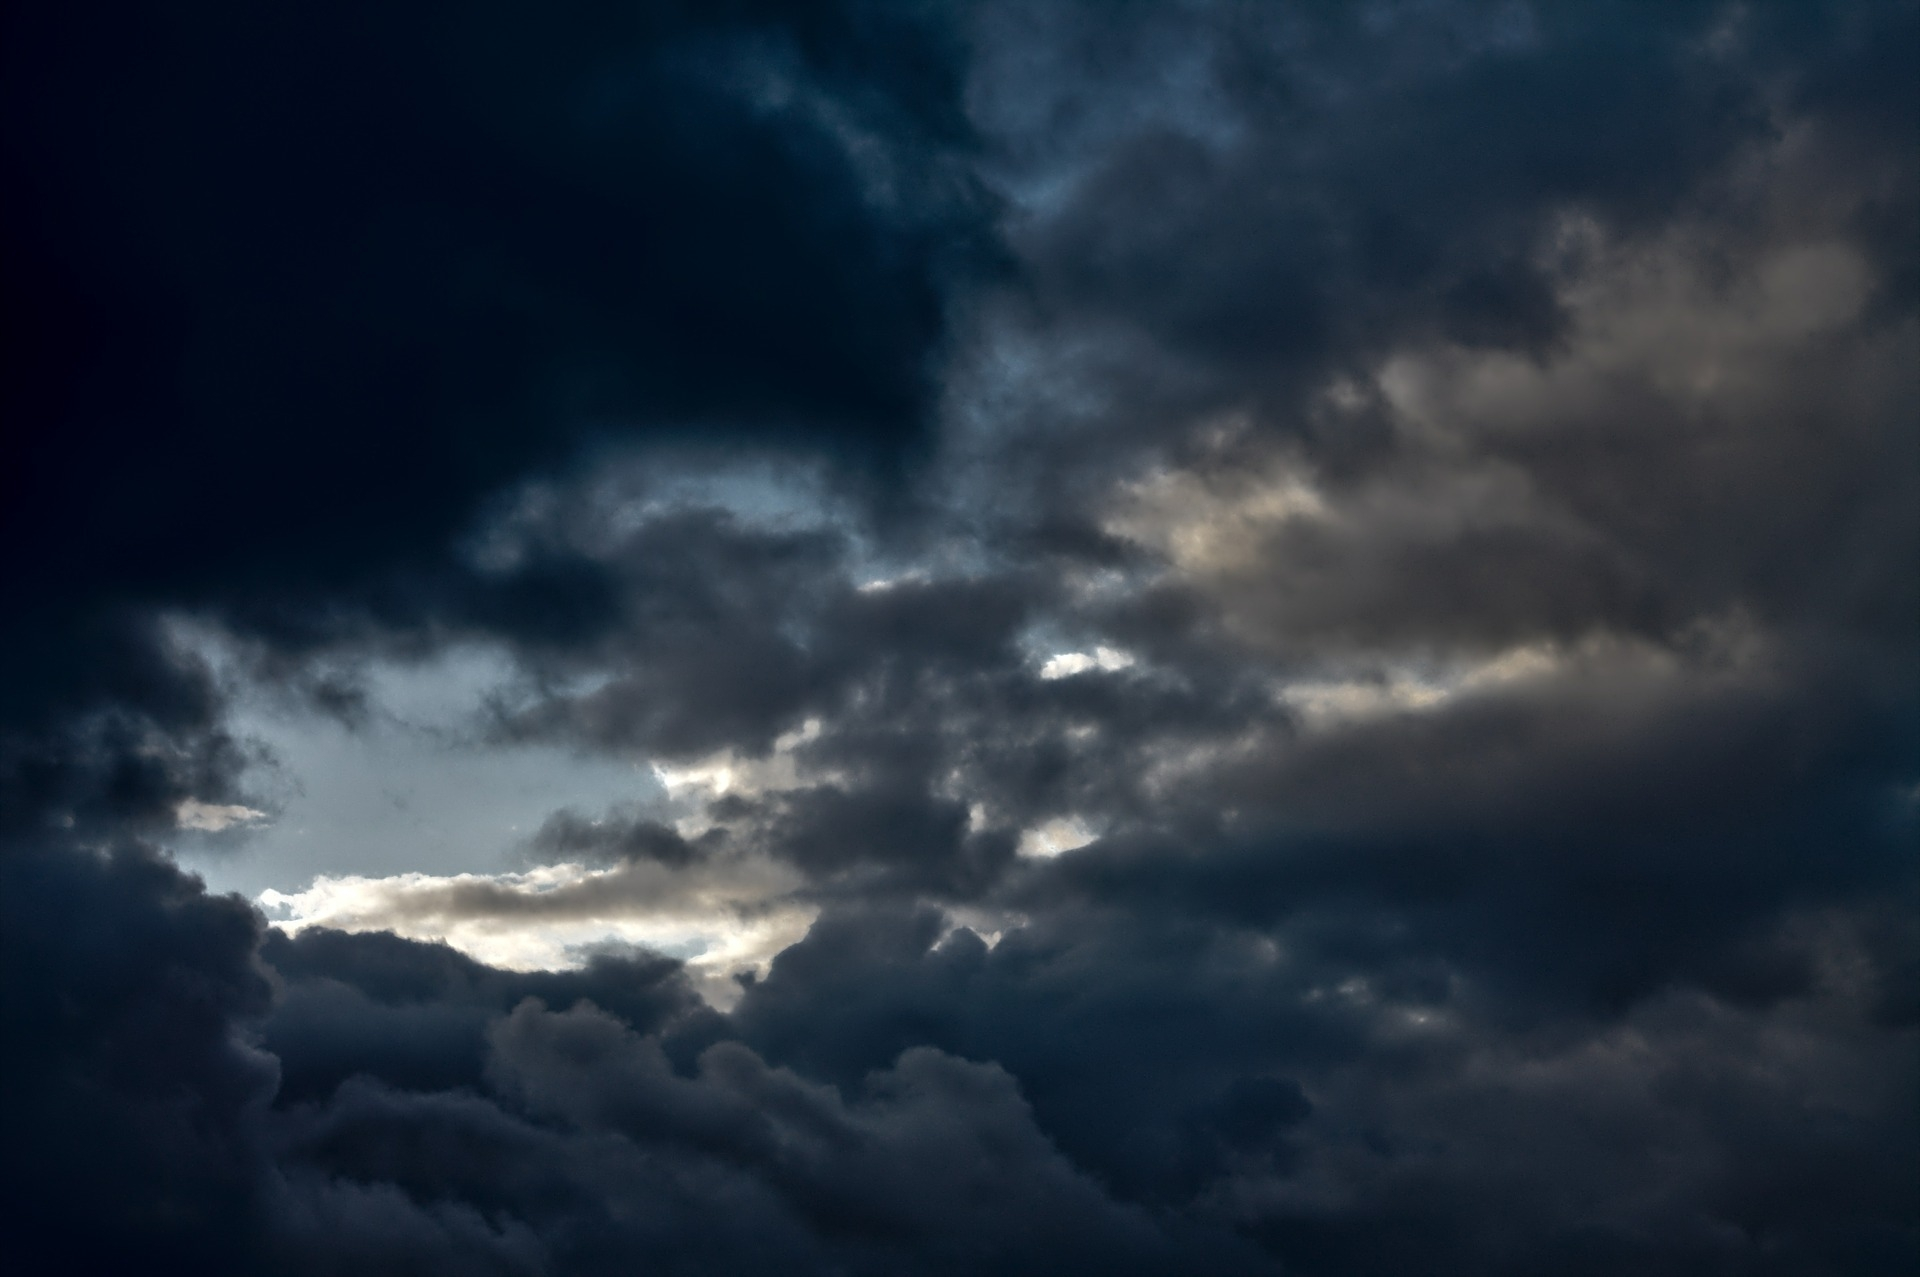 Mediation Matters: As storm clouds gather, you need faith in those you employ